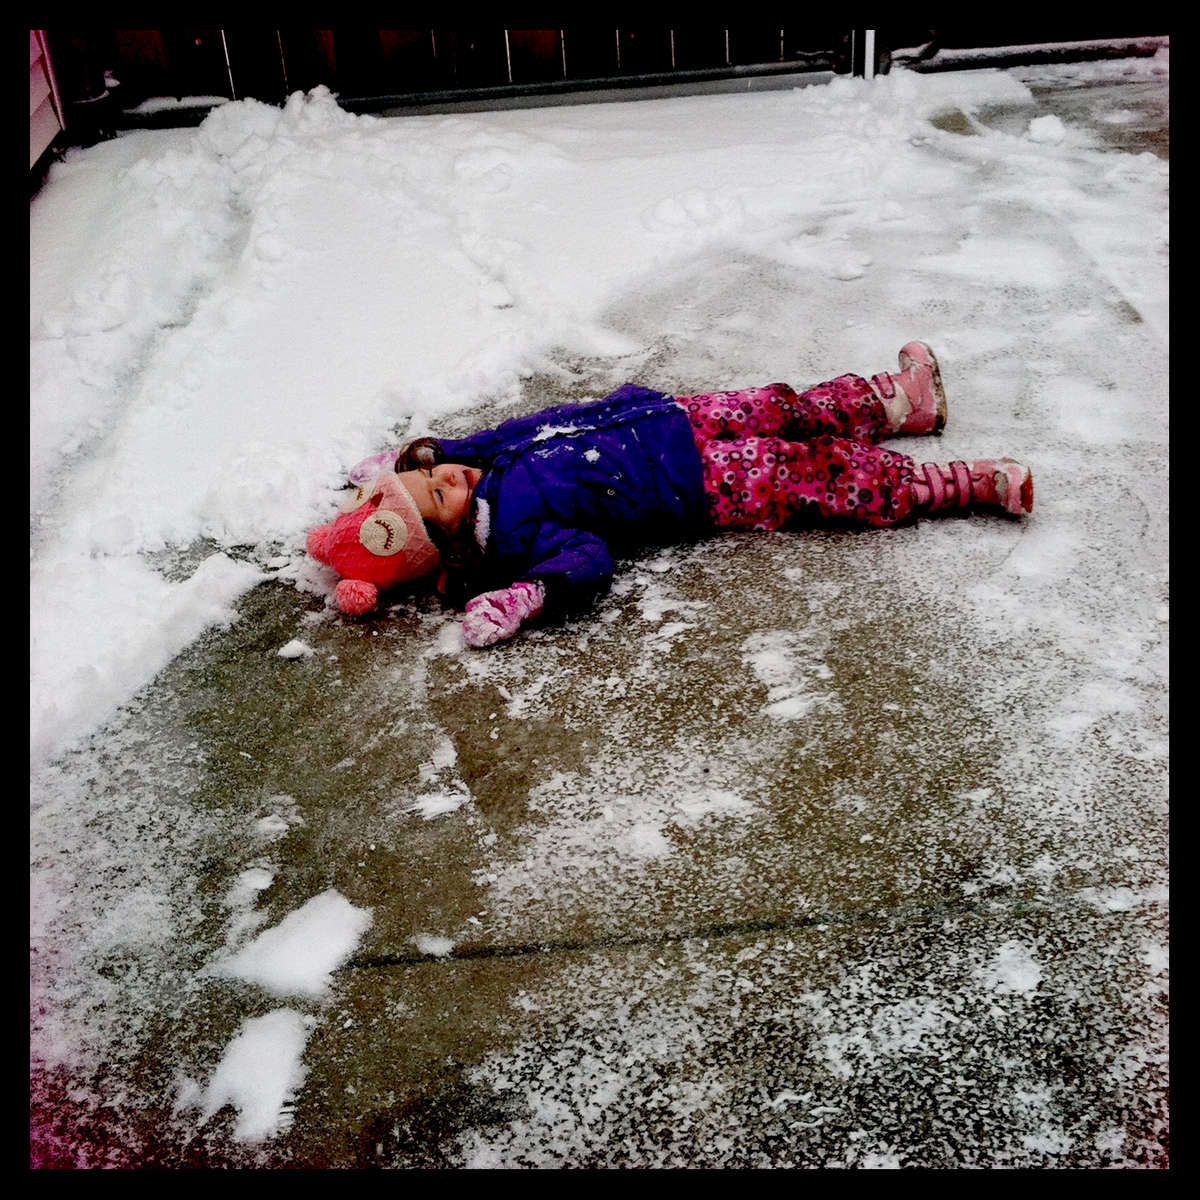 Rose lying on the parking pad after falling. She had been {quote}ice skating{quote} before she fell. March 2016.